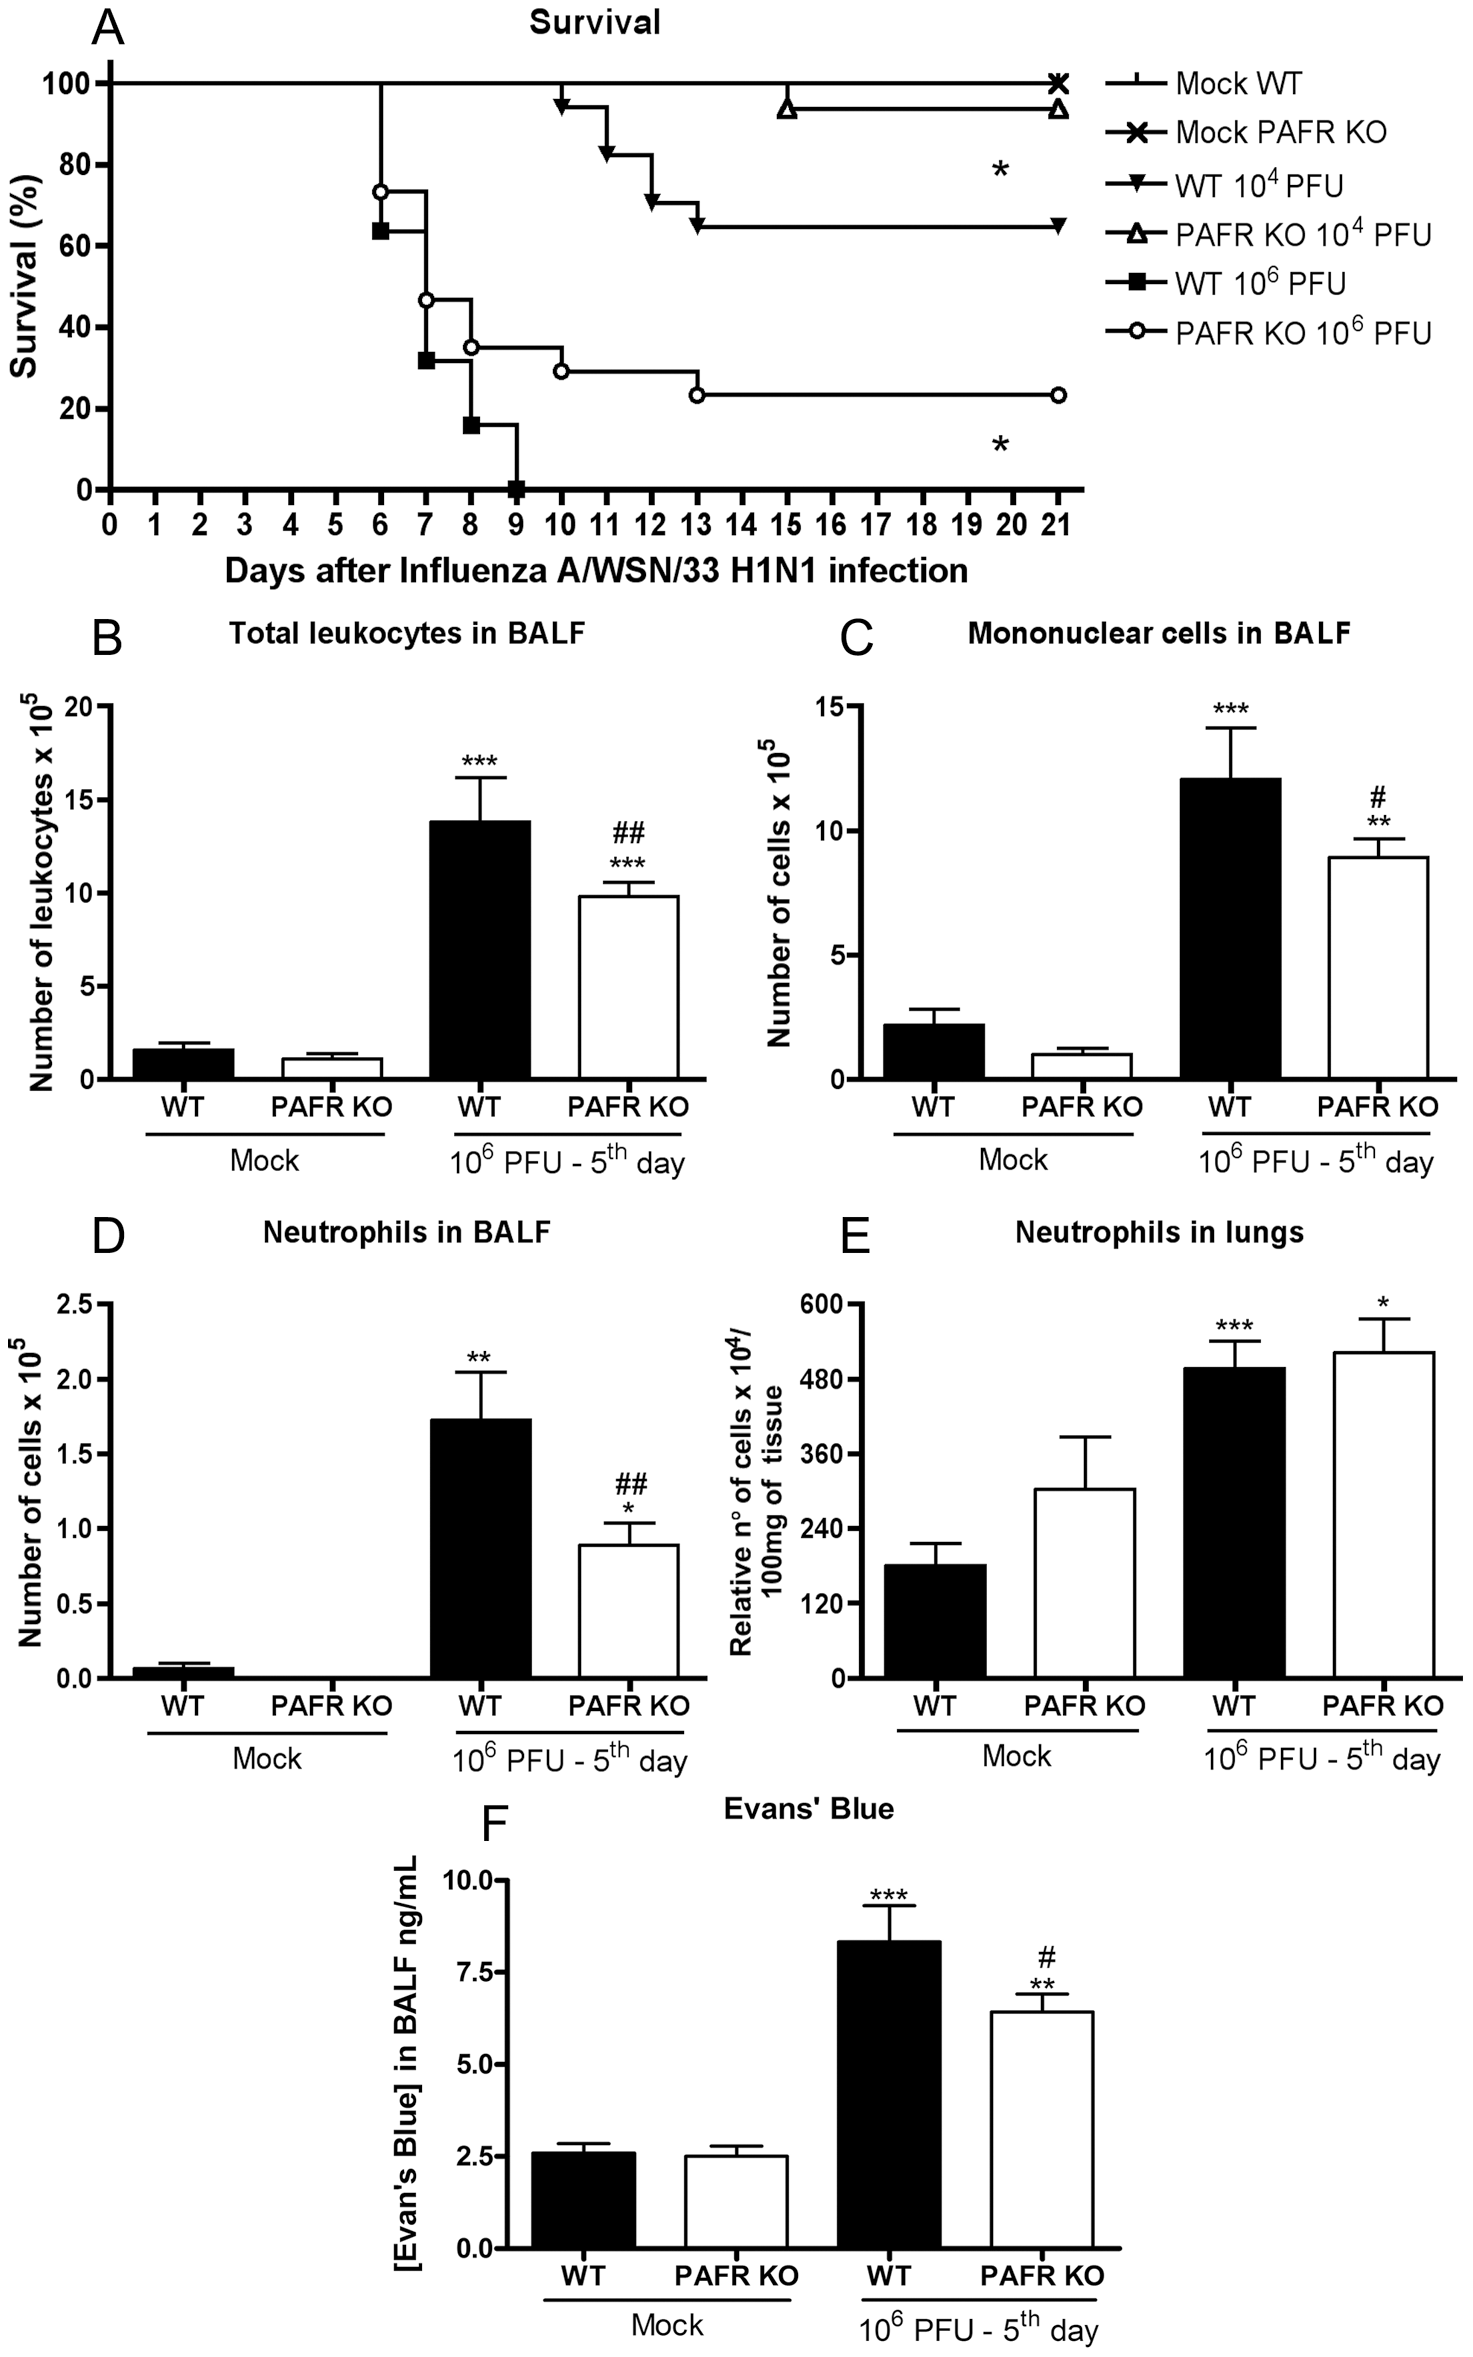 Lethal and mild Influenza A/WSN/33 H1N1 infections were less severe in PAFR KO deficient mice.